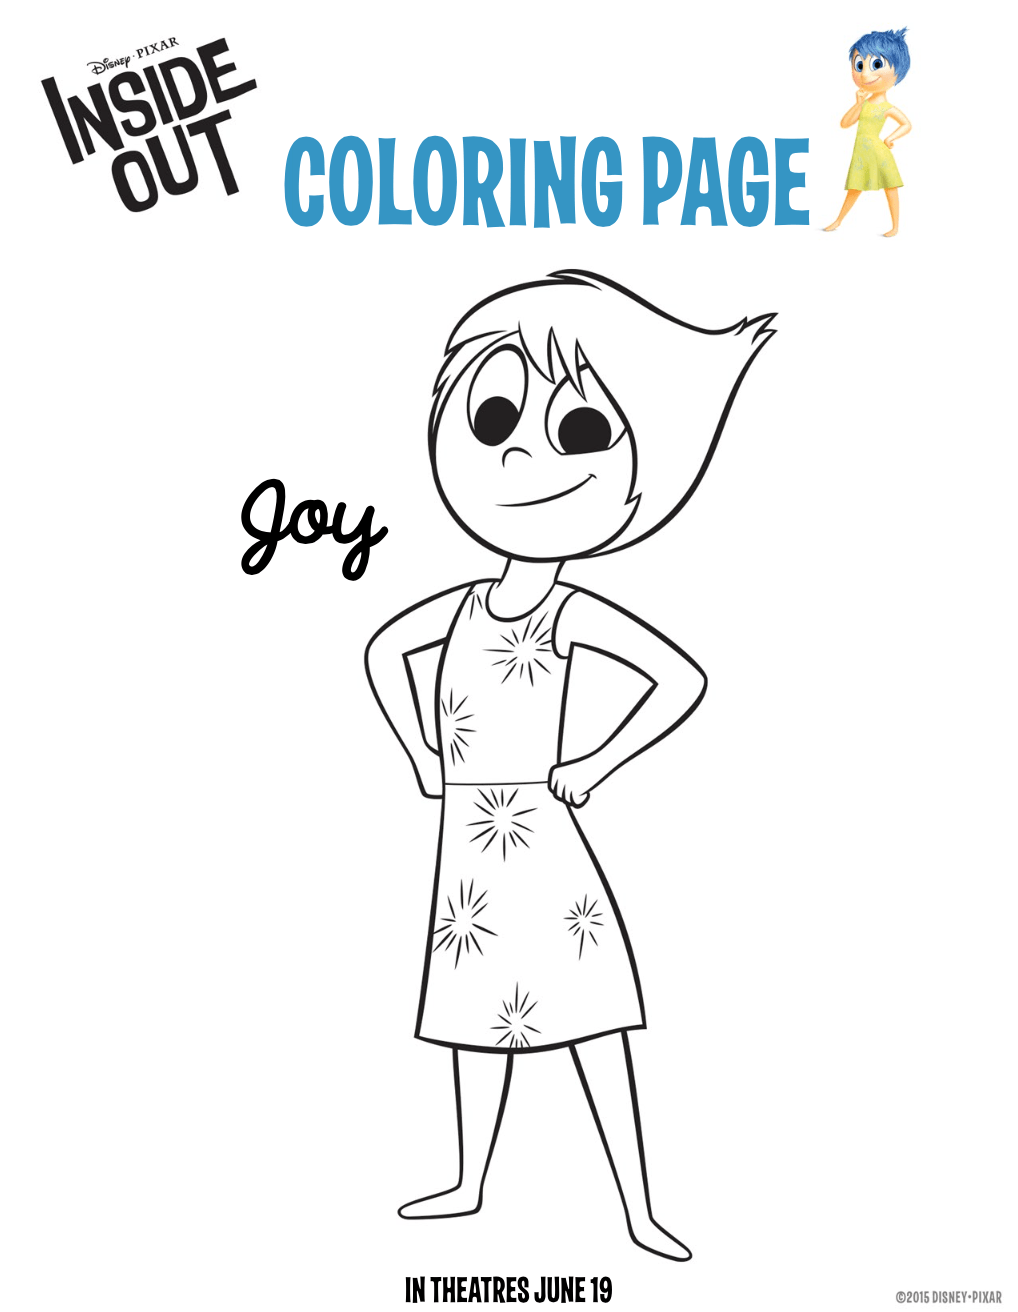 Inside out coloring pages riley - These Free Inside Out Coloring Pages Are Great To Keep Kids Entertained During The Summer